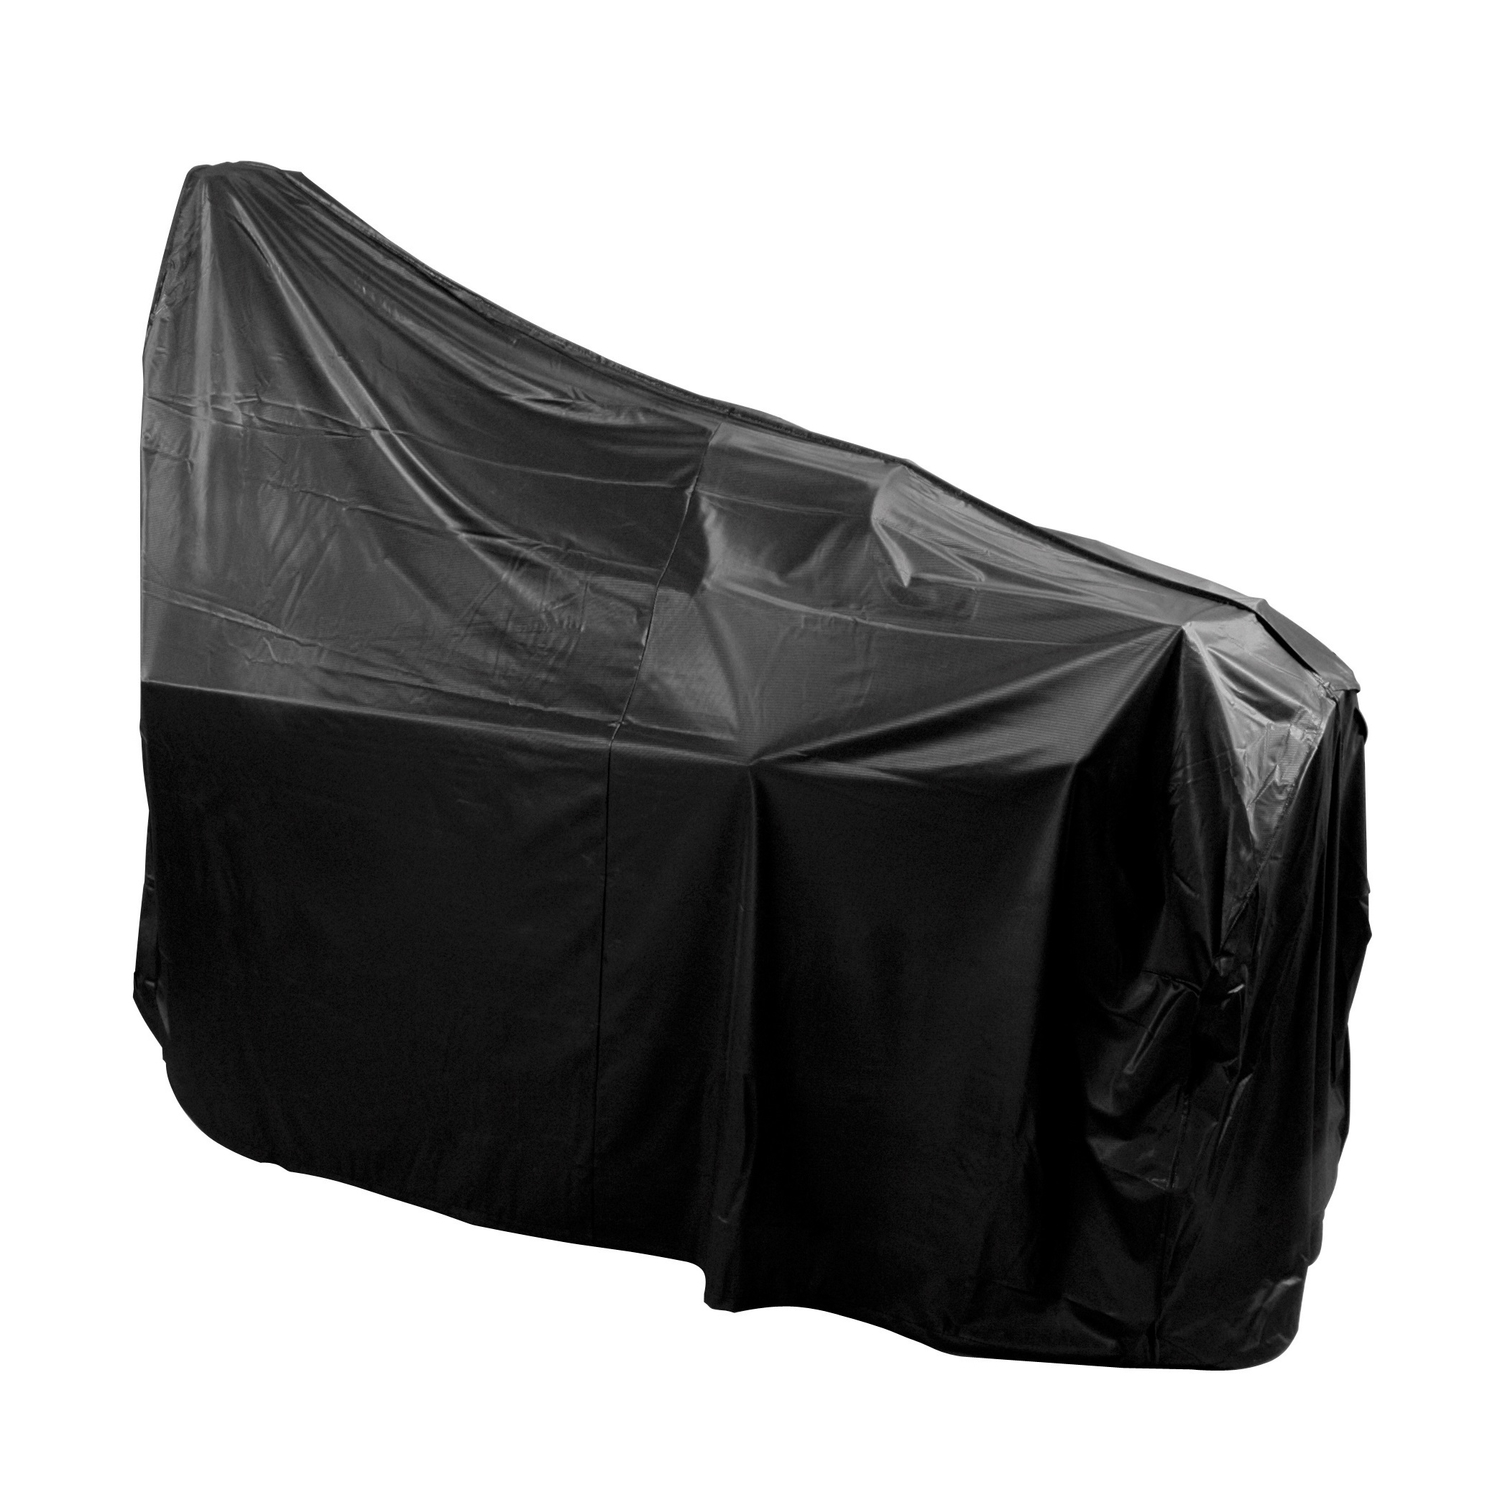 Char-Broil  Black  Smoker Cover  57.5 in. W x 28 in. D x 55 in. H For Designed to fit 5,6 or 7 Burne